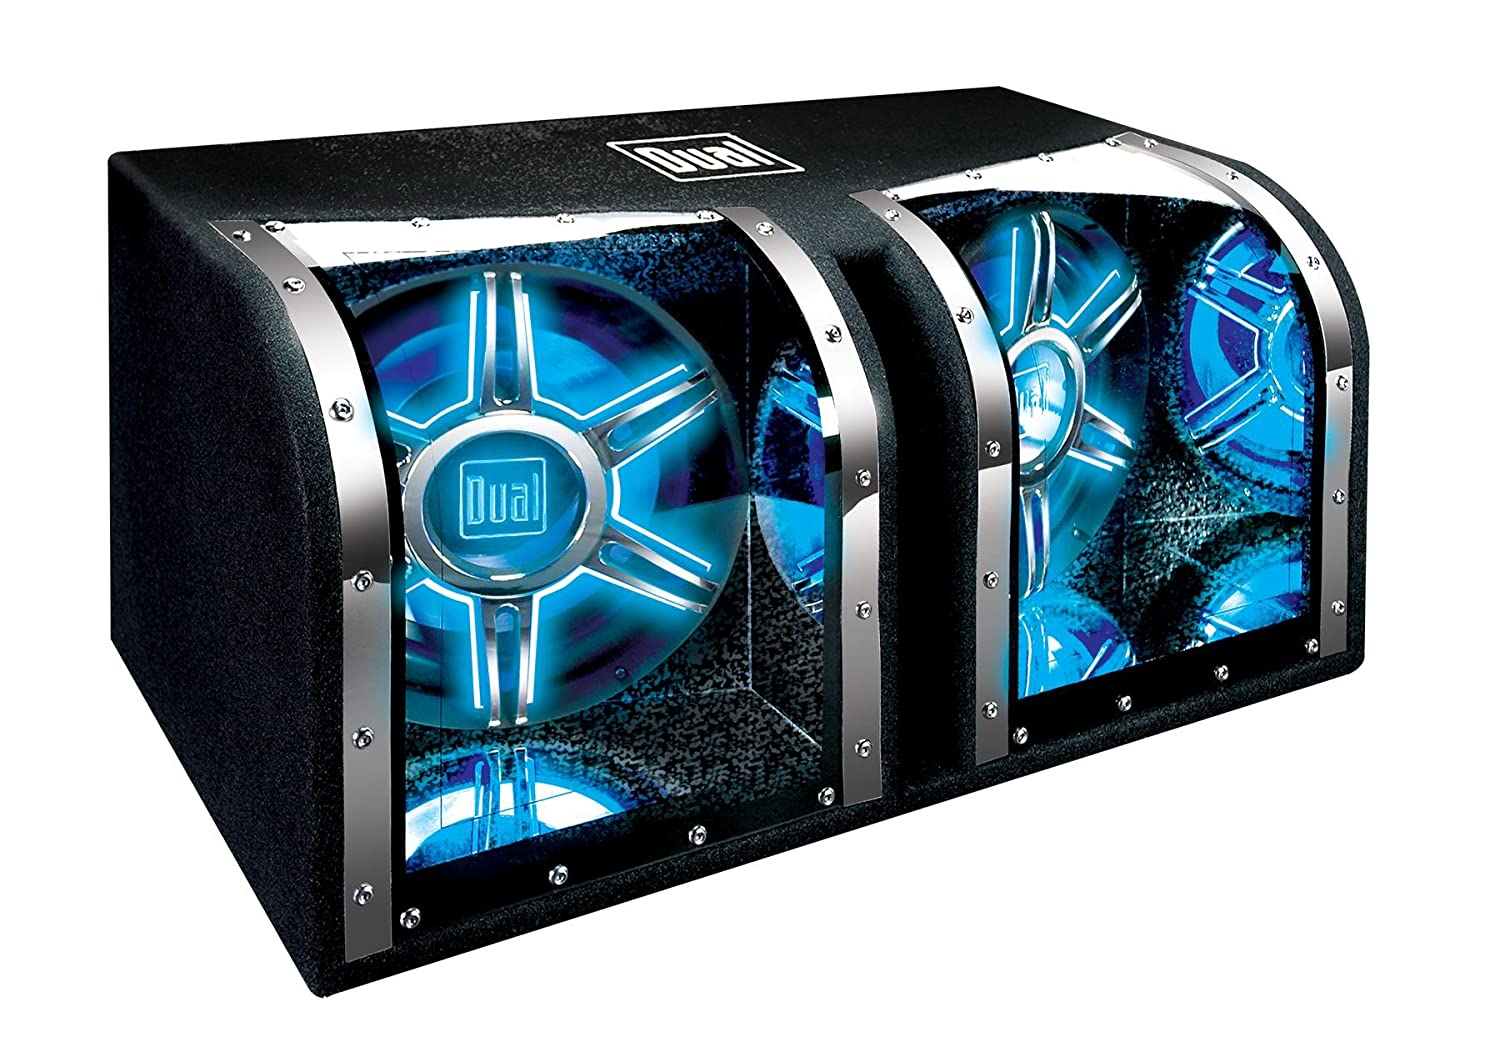 best subwoofer for car - Dual BP1204 12-Inch 1100-Watt Illumination Bandpass Subwoofer